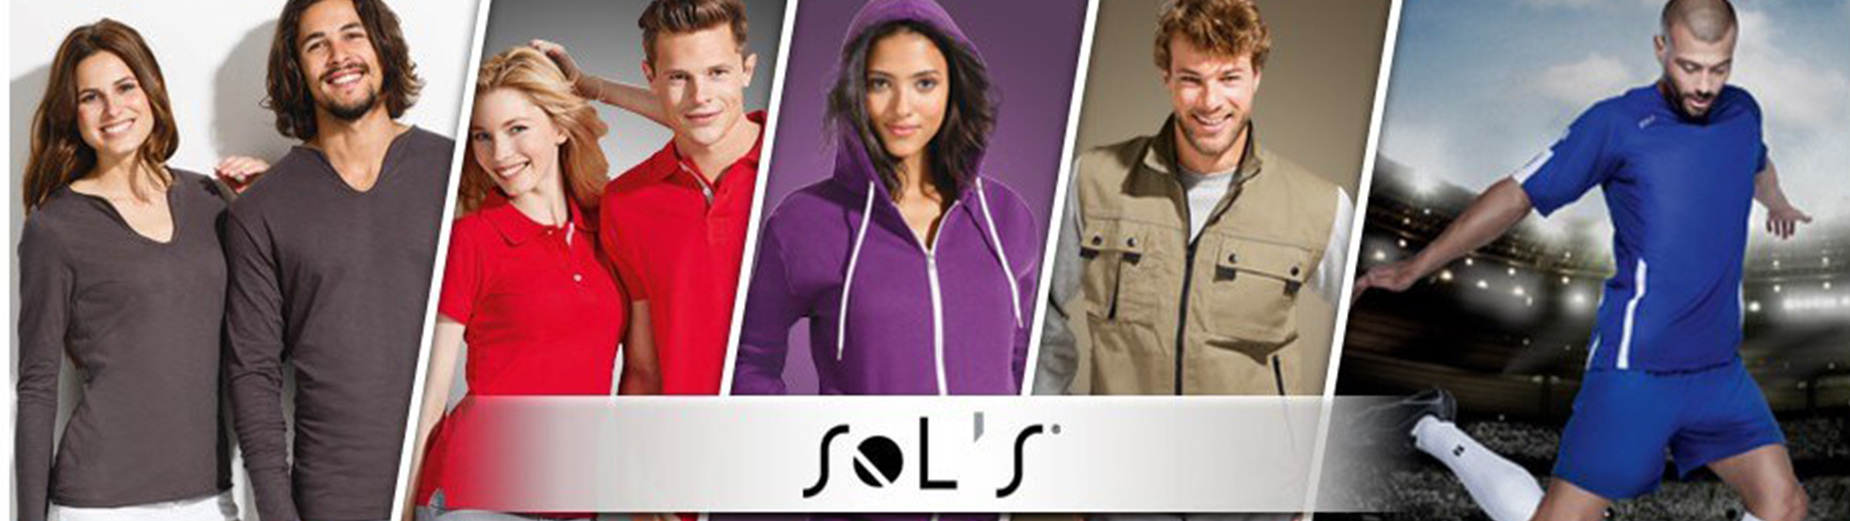 sol-s-collection